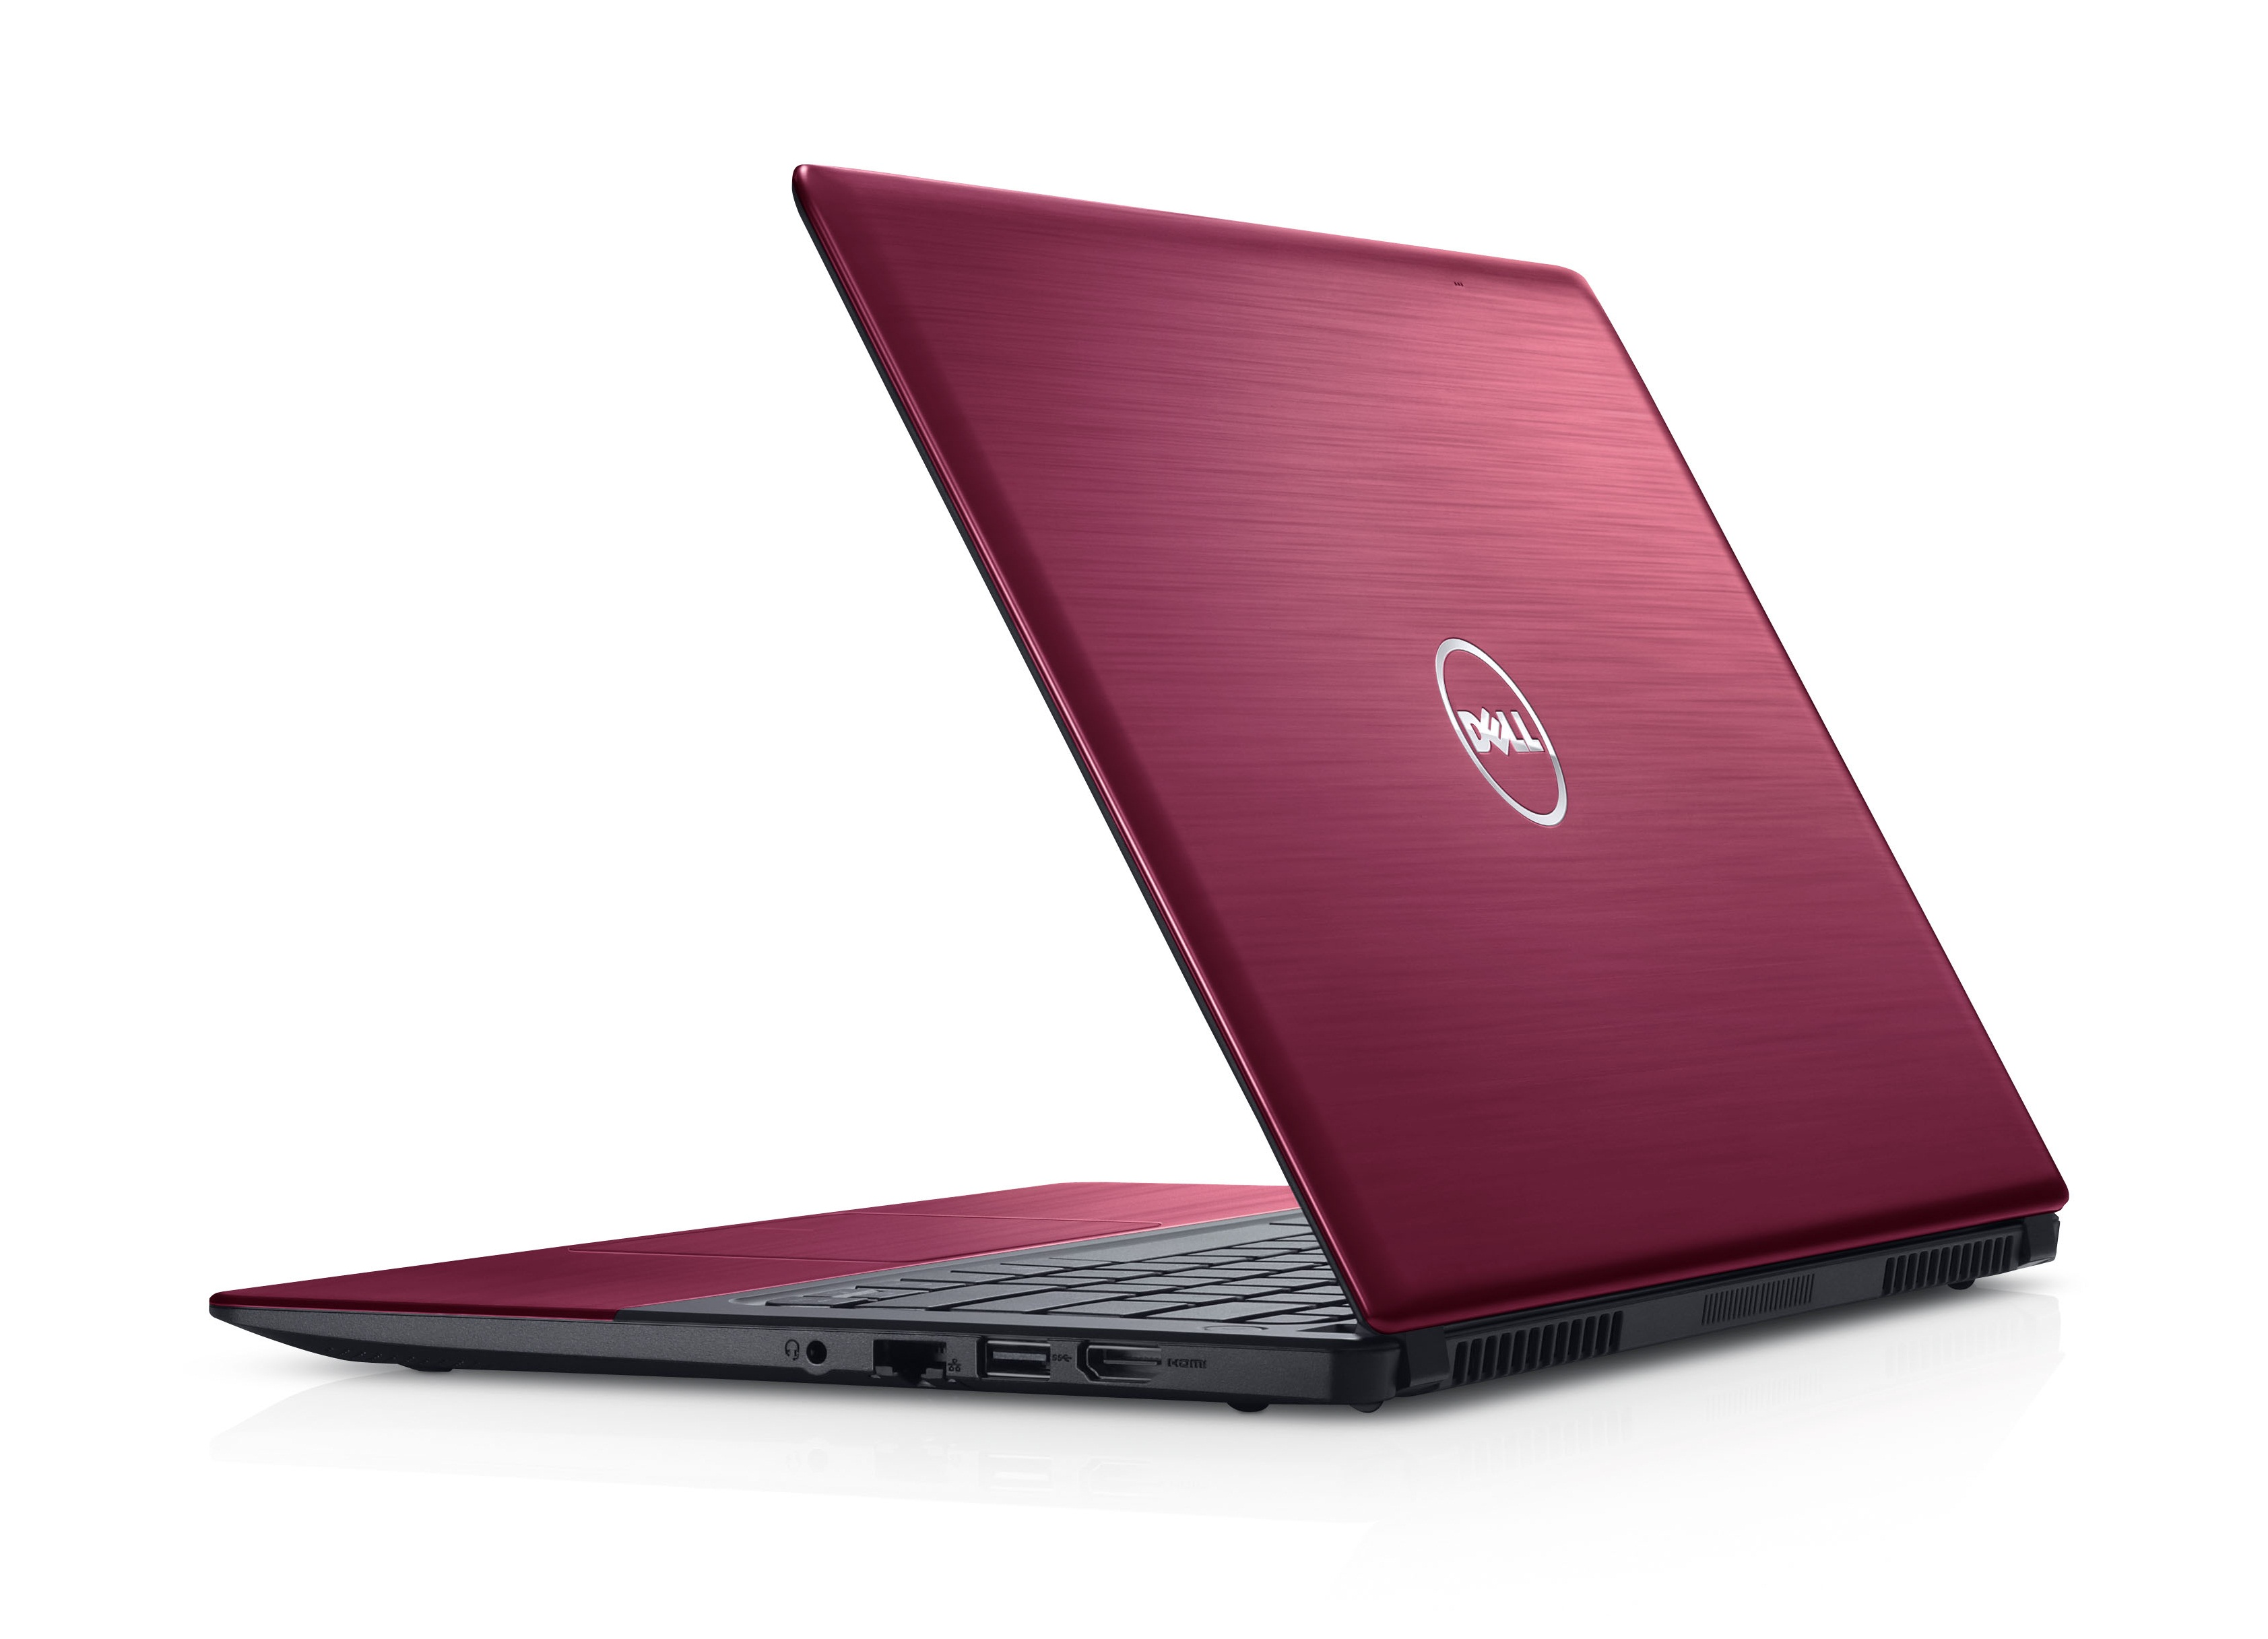 Vostro 5460 promises to be Dell's thinnest and lightest 14-inch laptop